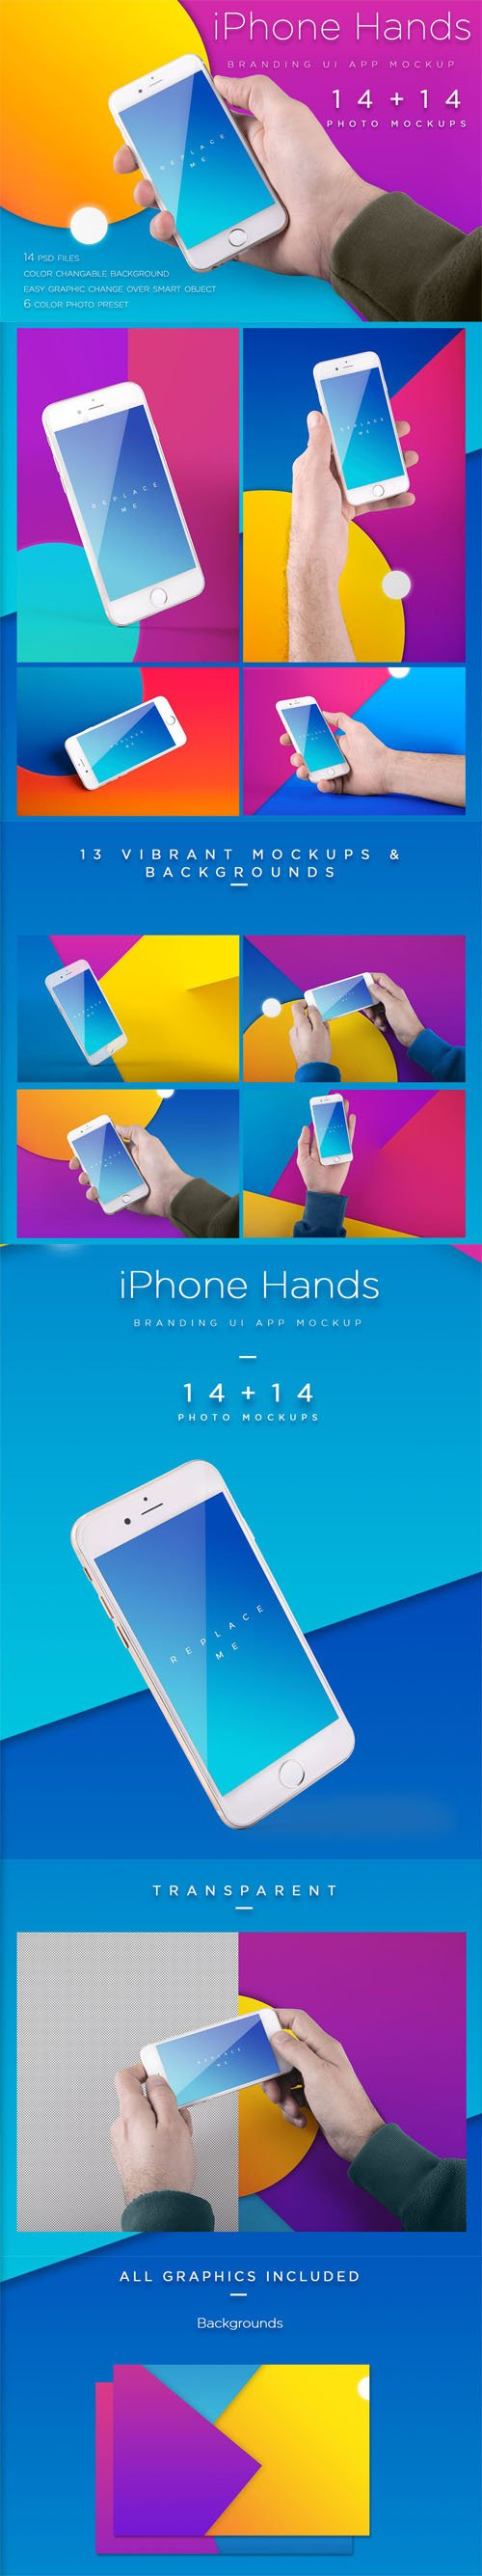 iPhone Mockup / Template With Colorful Bcg's vol.2